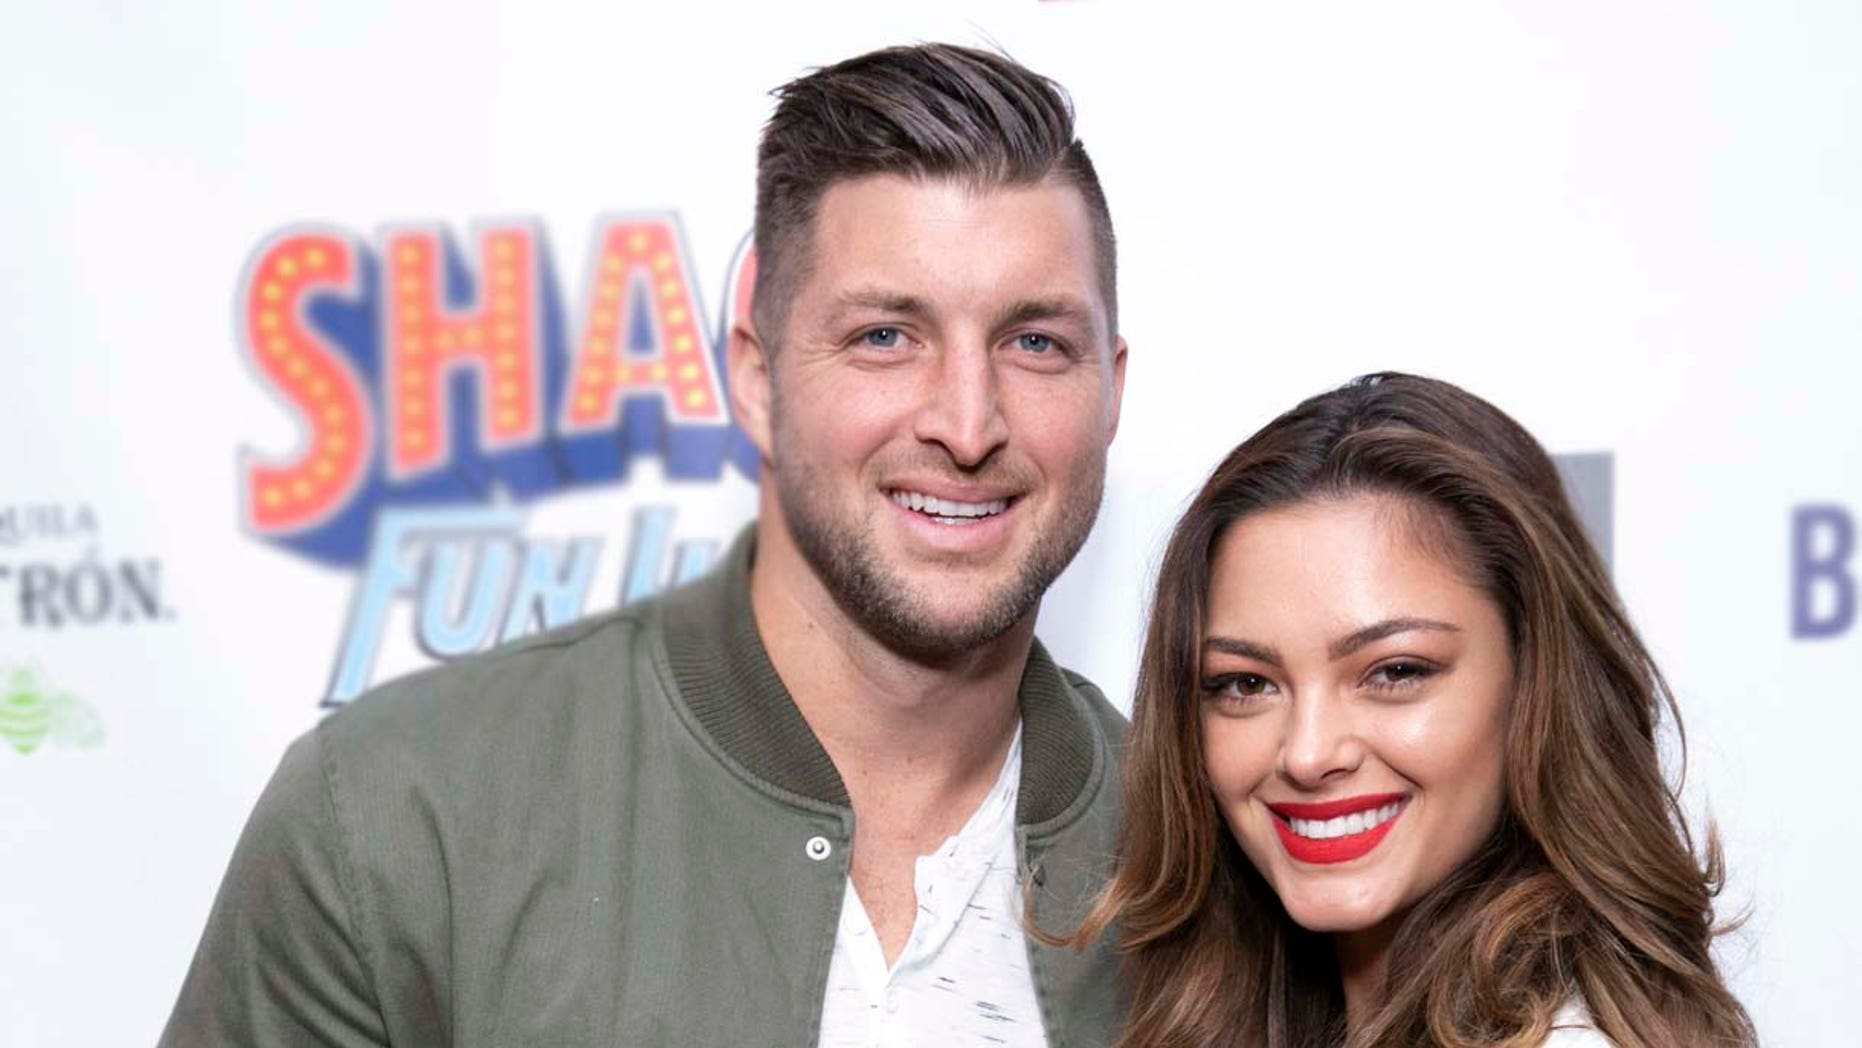 Tim Tebow and Demi-Leigh Nel-Peters arrive at Shaq's Fun House at Live! at the Battery Atlanta on Friday, Feb. 1, 2019, in Atlanta. (Photo by Omar Vega/Invision/AP)